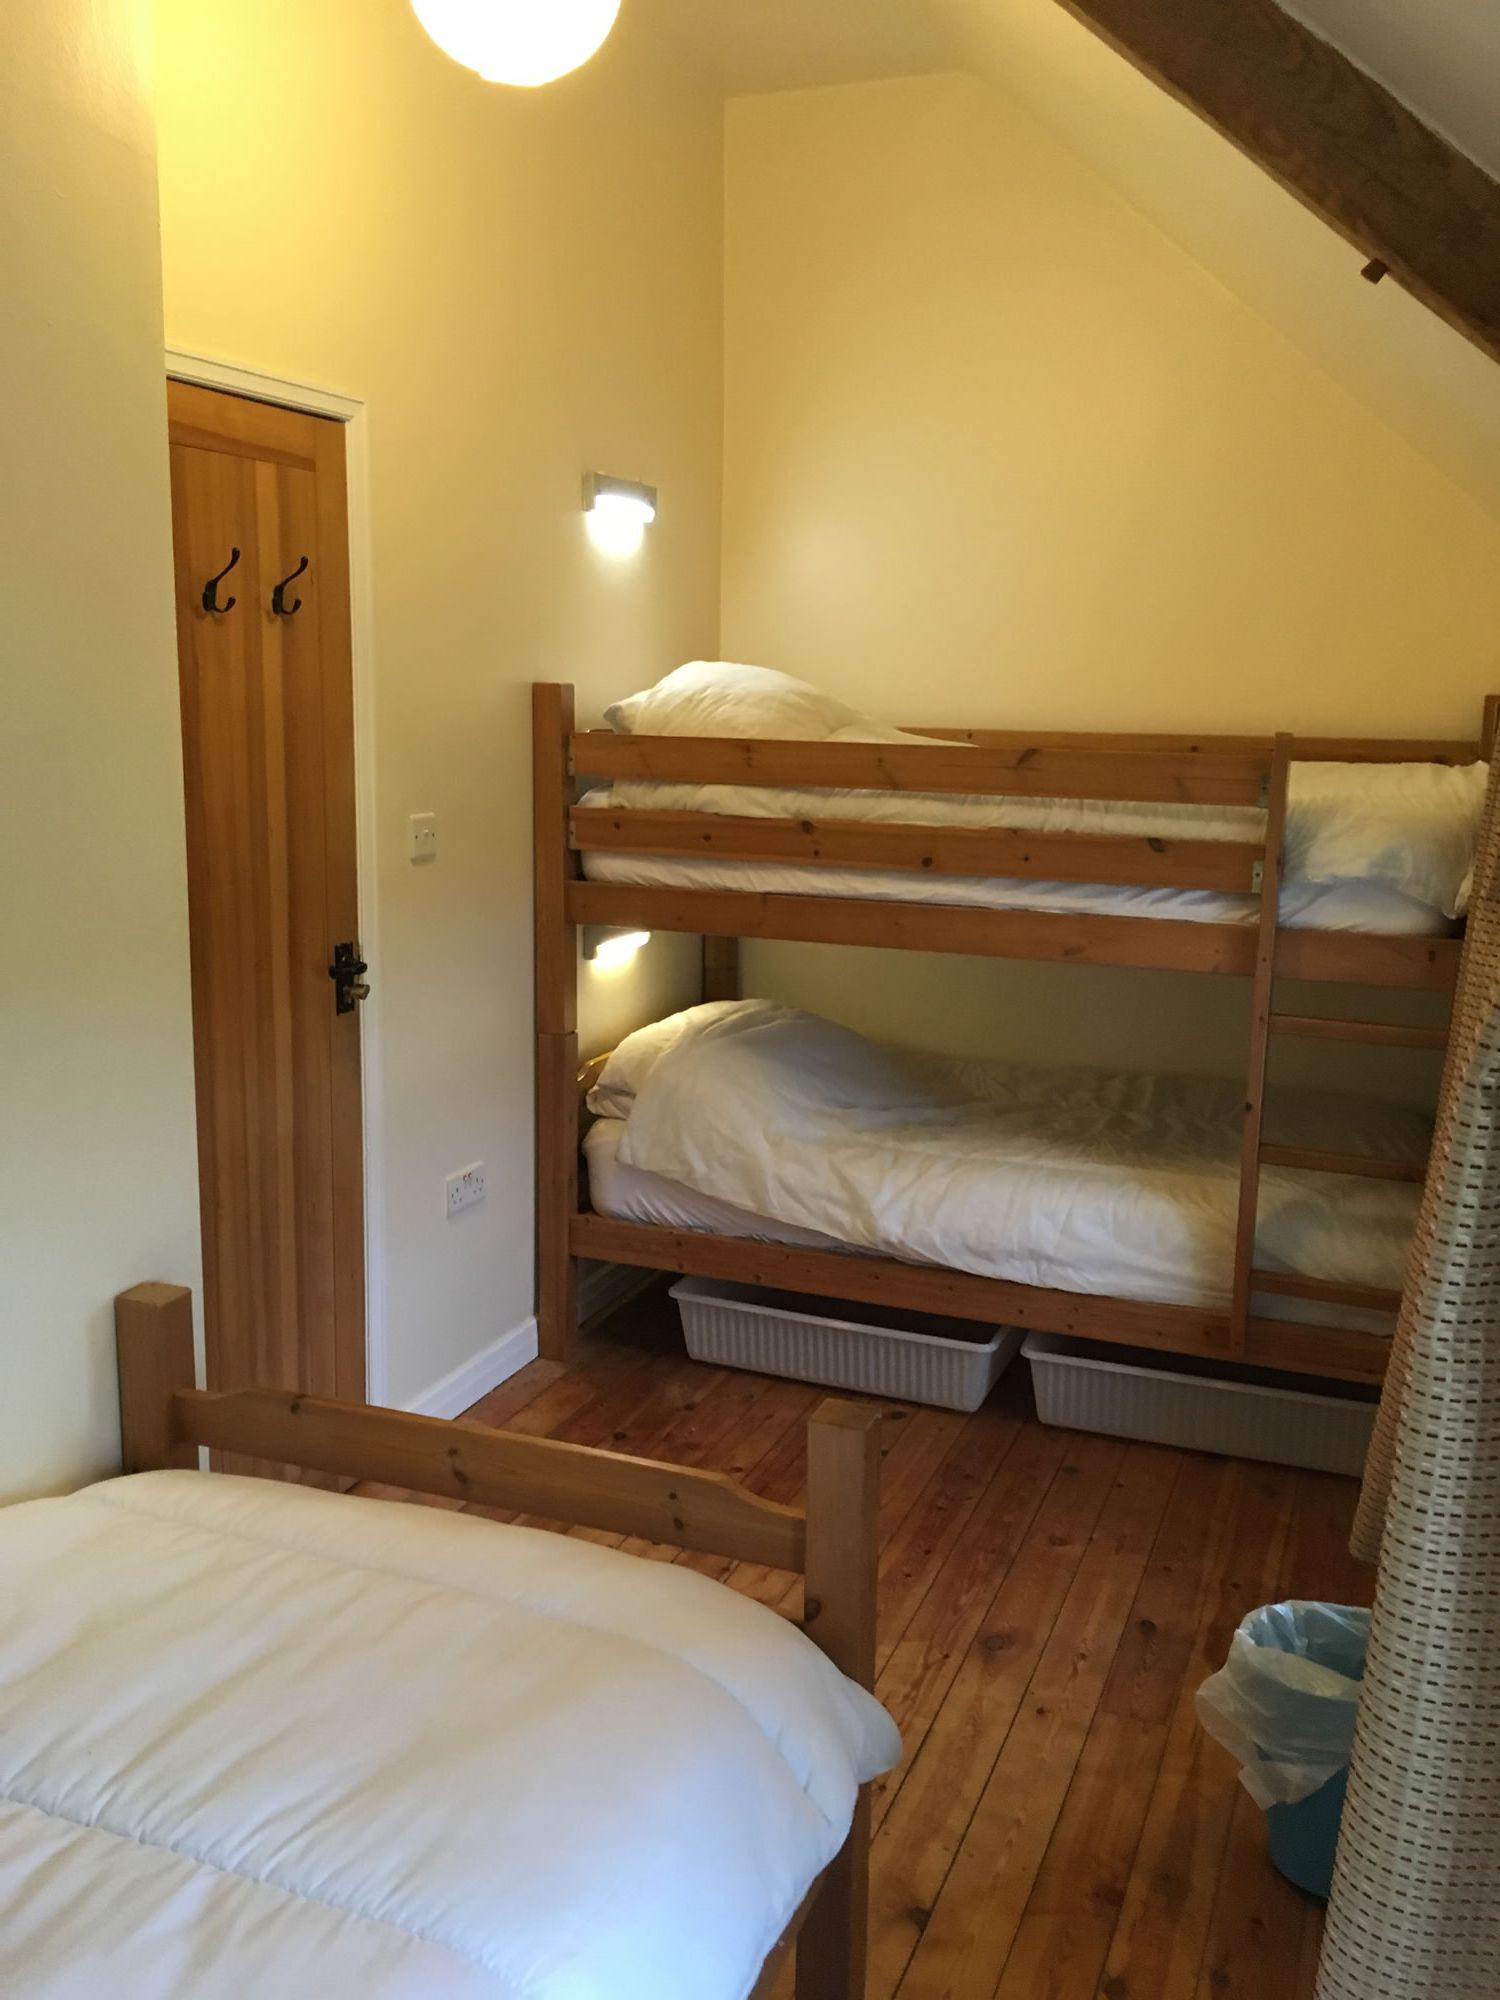 Hardingsdown Bunkhouse and The Chaffhouse The perfect base for all holidays in the Gower Peninsula.